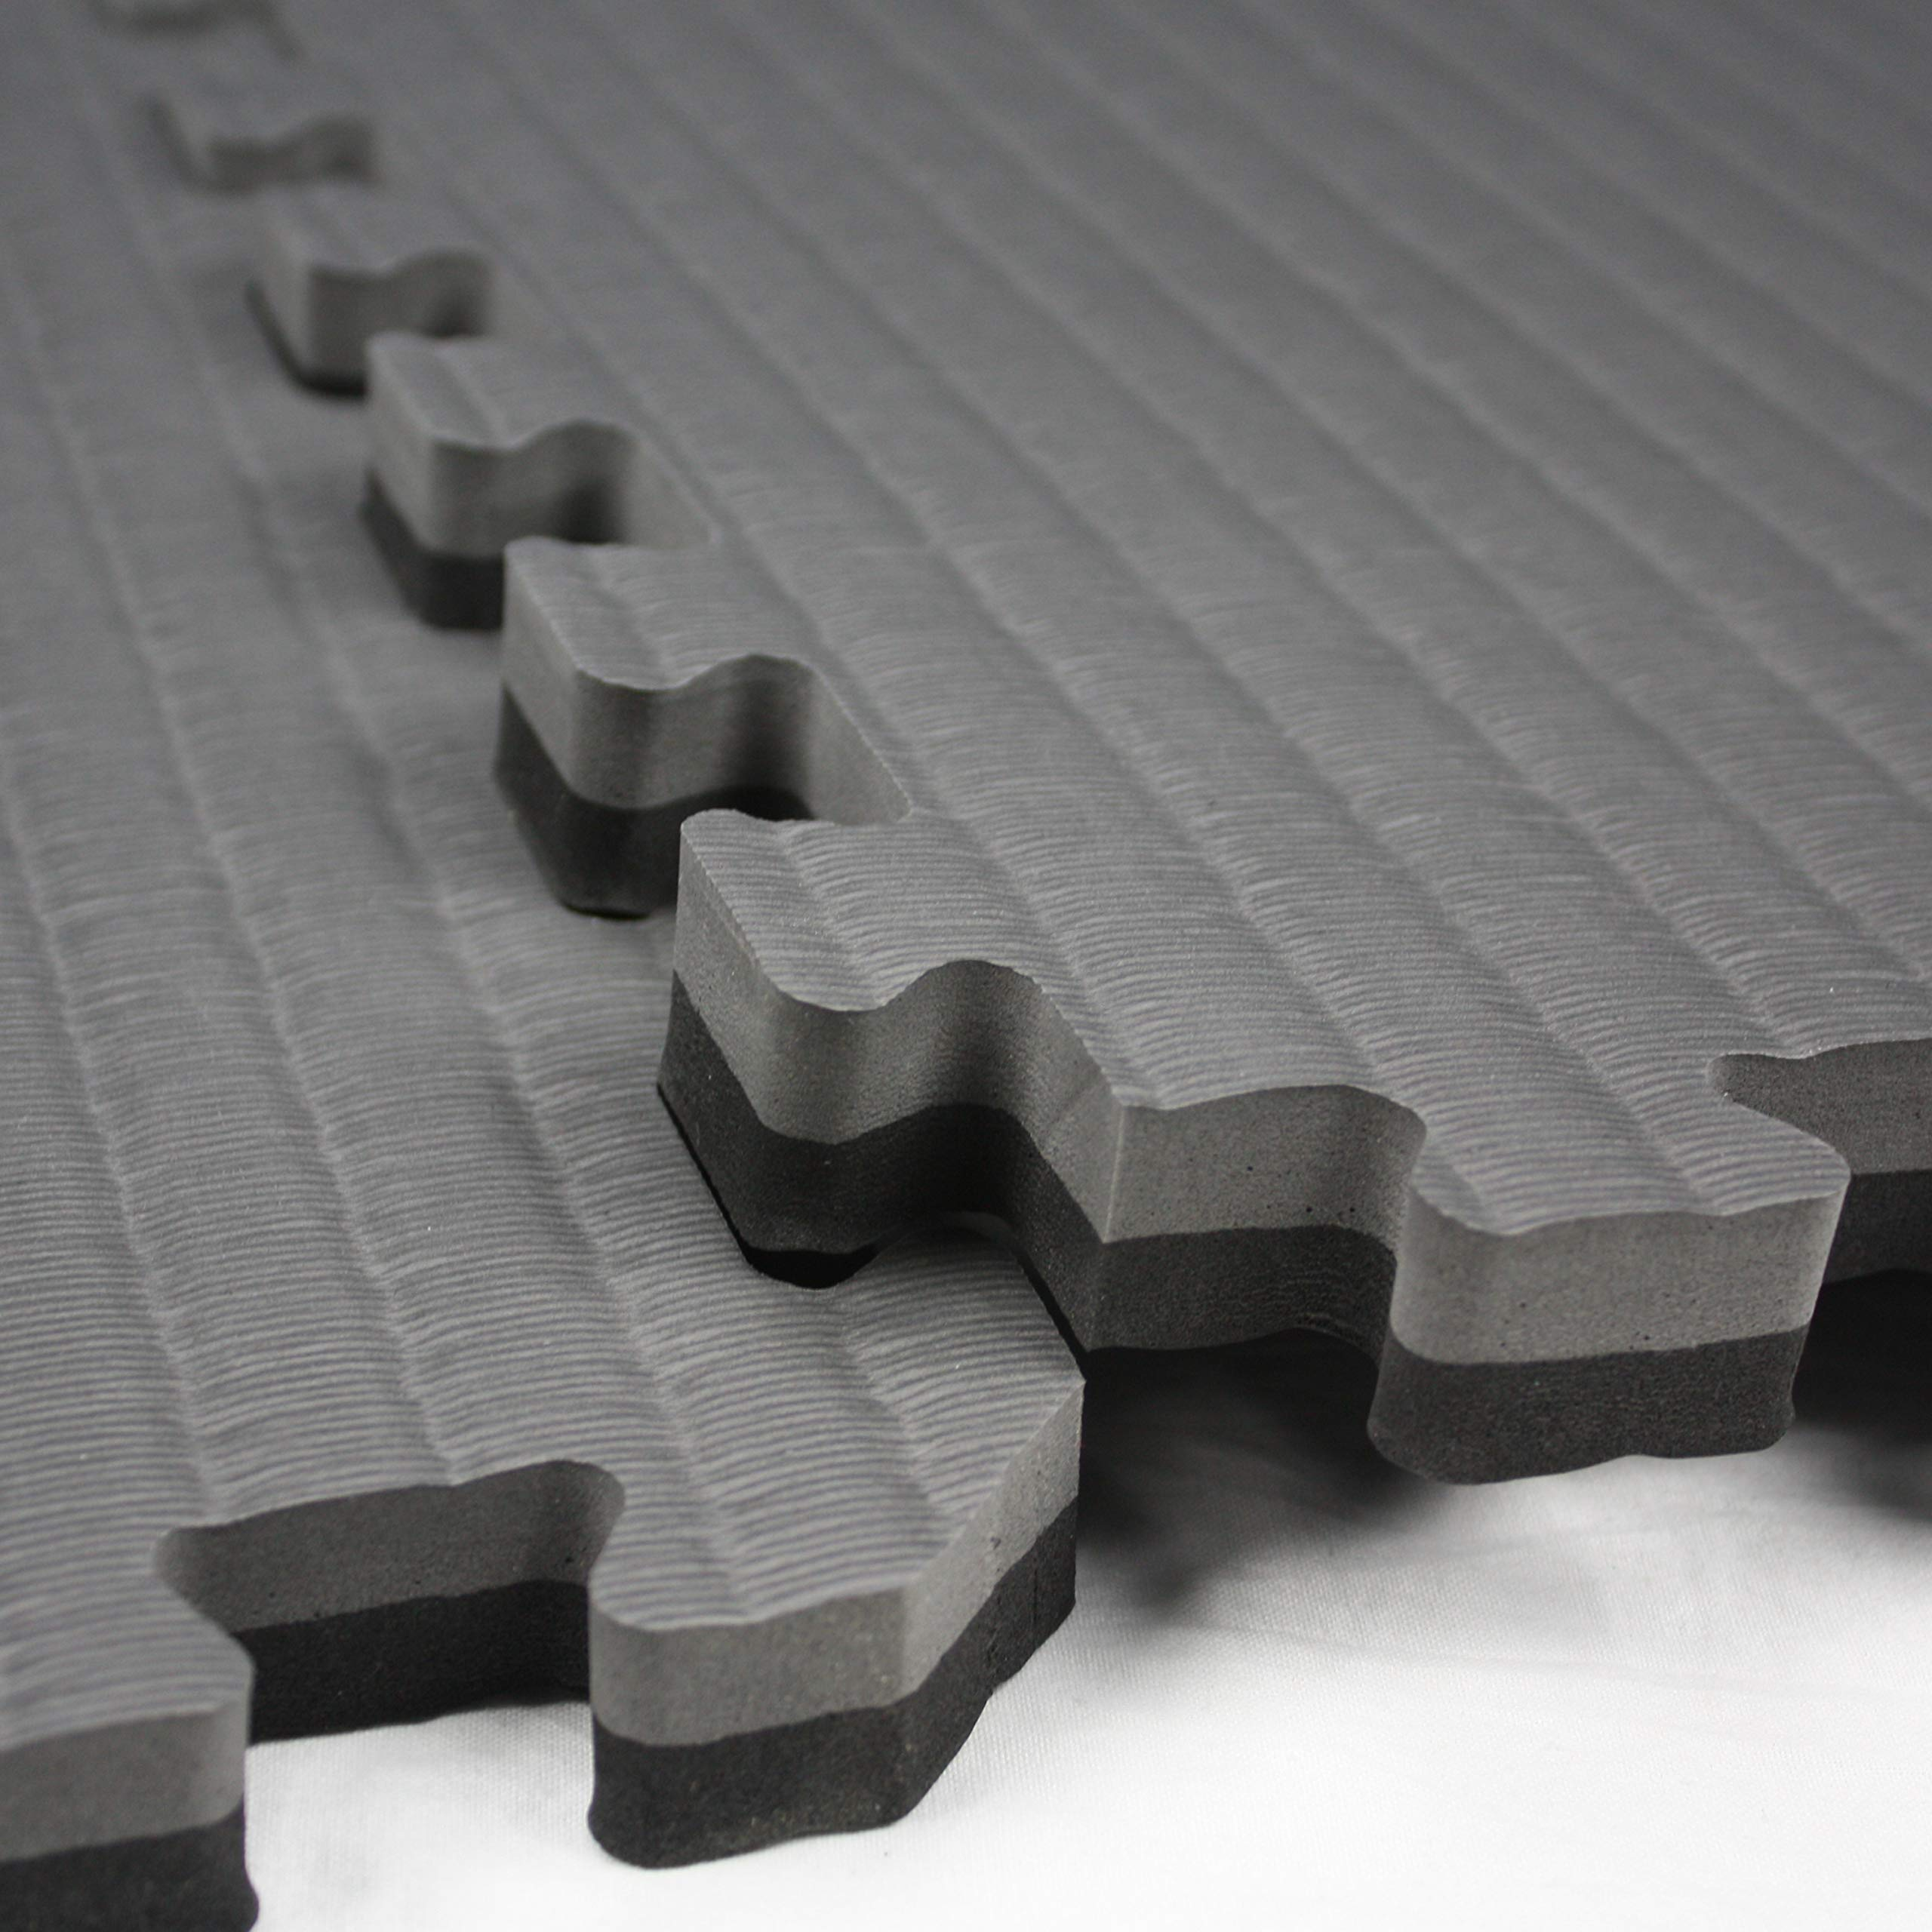 IncStores - Tatami Foam Tiles - Extra Thick mats Perfect for Martial Arts, MMA, Lightweight Home Gyms, p90x, Gymnastics, Yoga and Cardio (Black/Grey, 16 (3'x3') Tiles, 144 Sqft + Borders) by IncStores (Image #5)